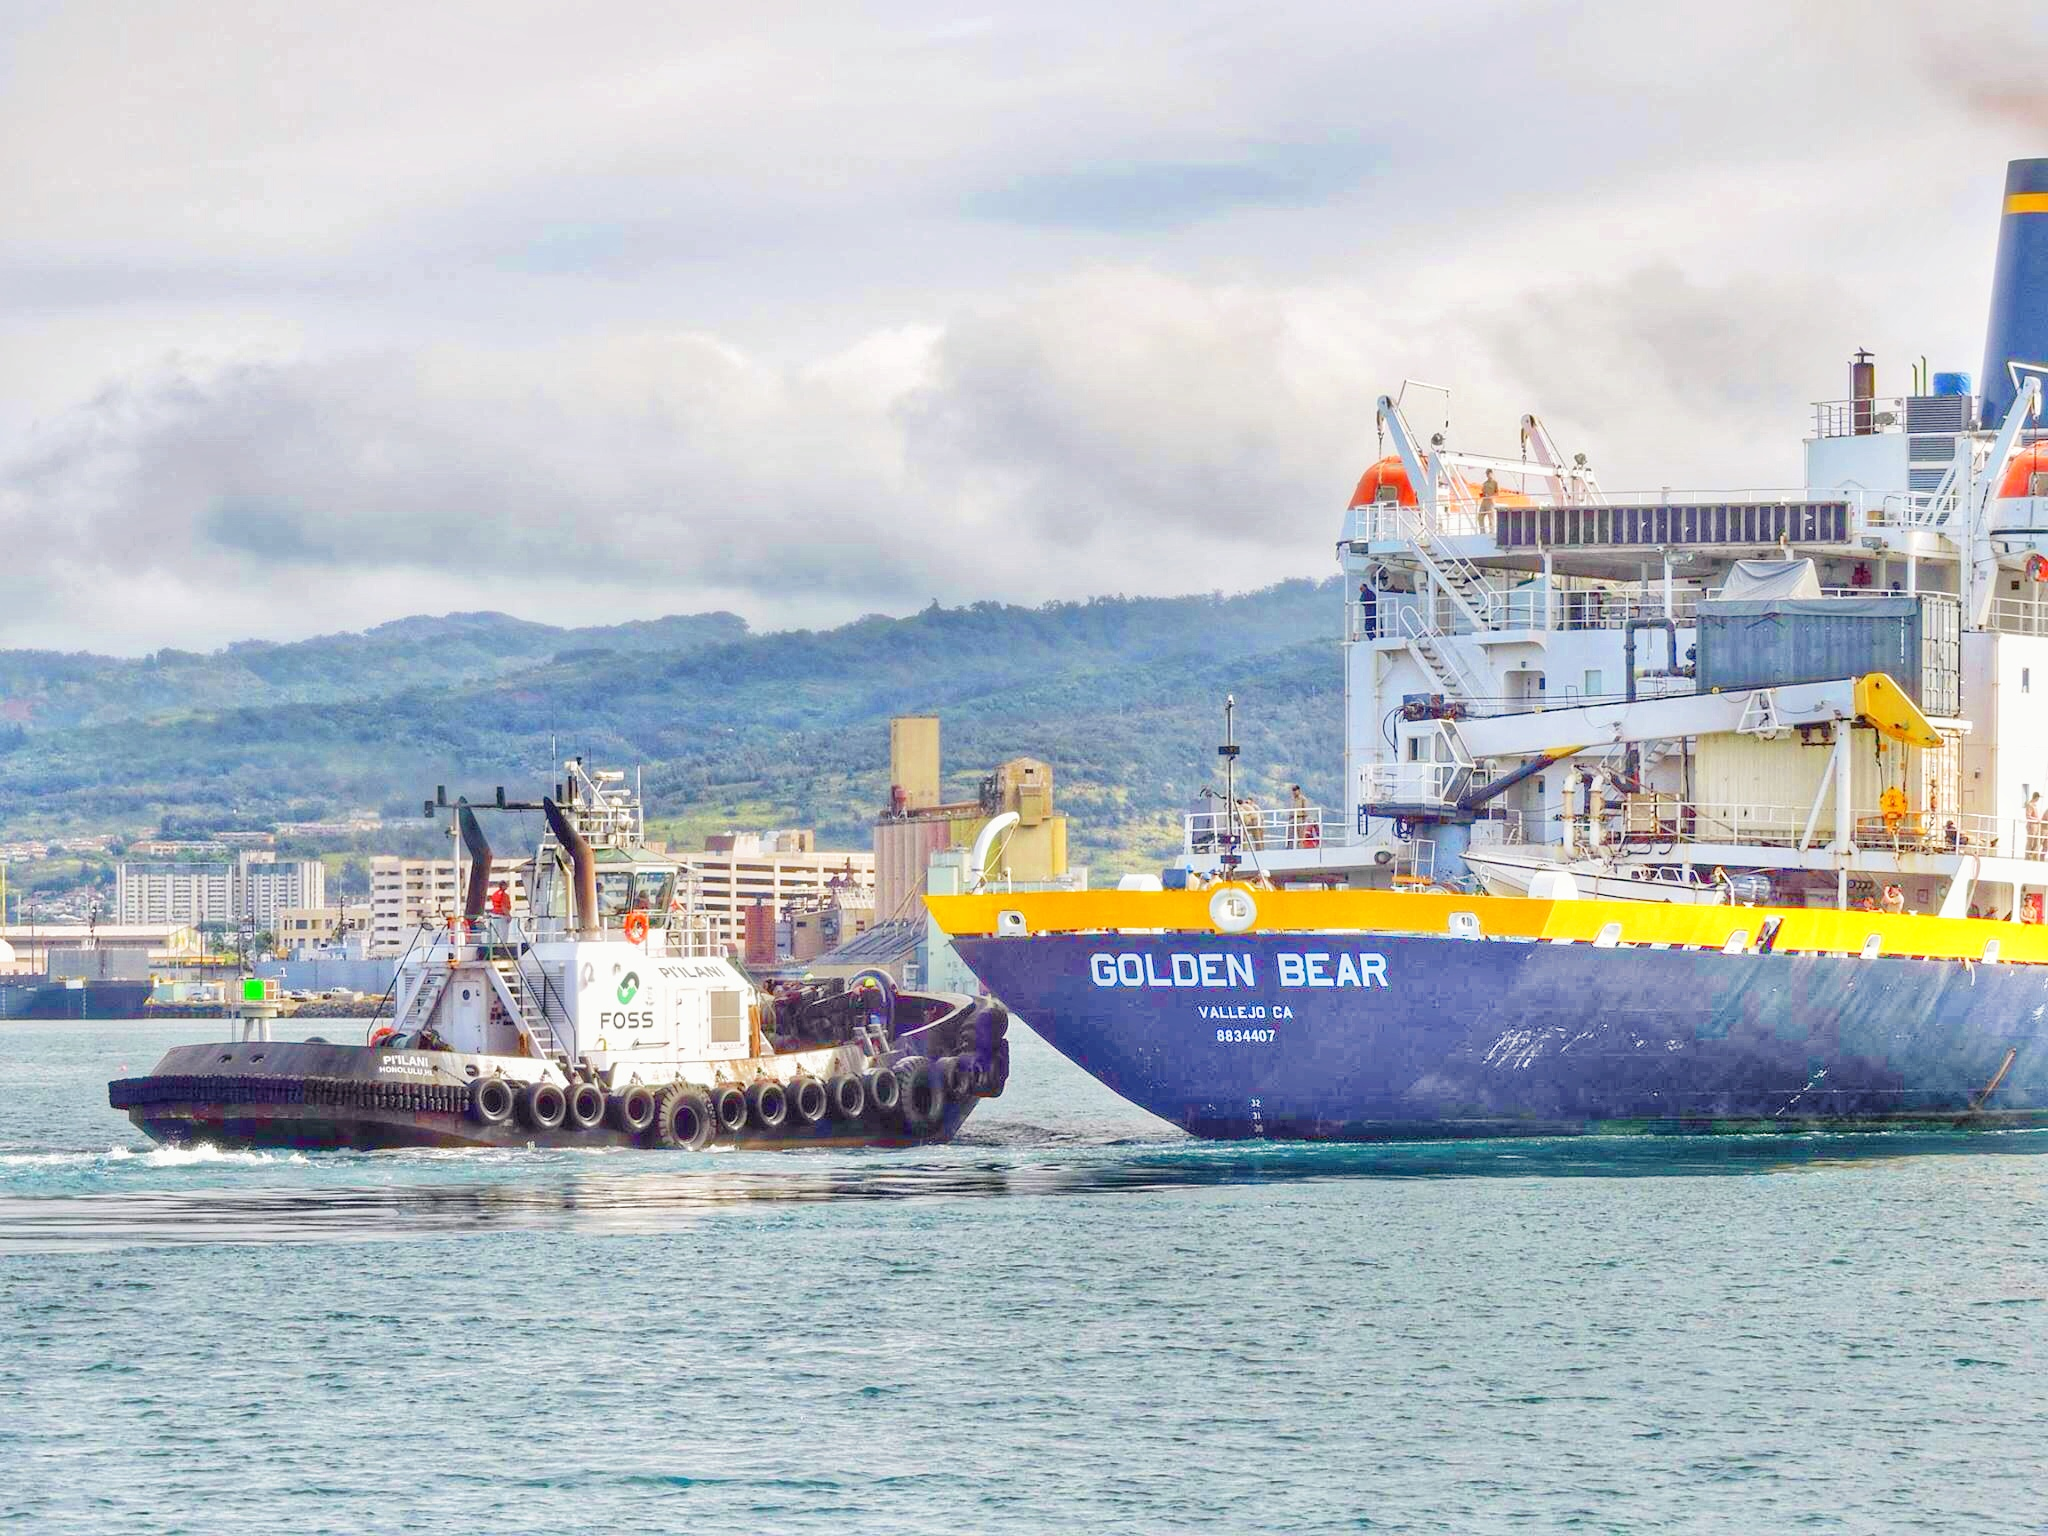 The T/S GOLDEN BEAR departed El Salvador and is on her way to Hawaii. Next stop, Lahaina, Maui on May 23. Not certain of schedule once the ship arrives. Sometimes they do drills and 'rubber docking' maneuvers. At some point, they may anchor and allow cadets ashore. Standby for more info.